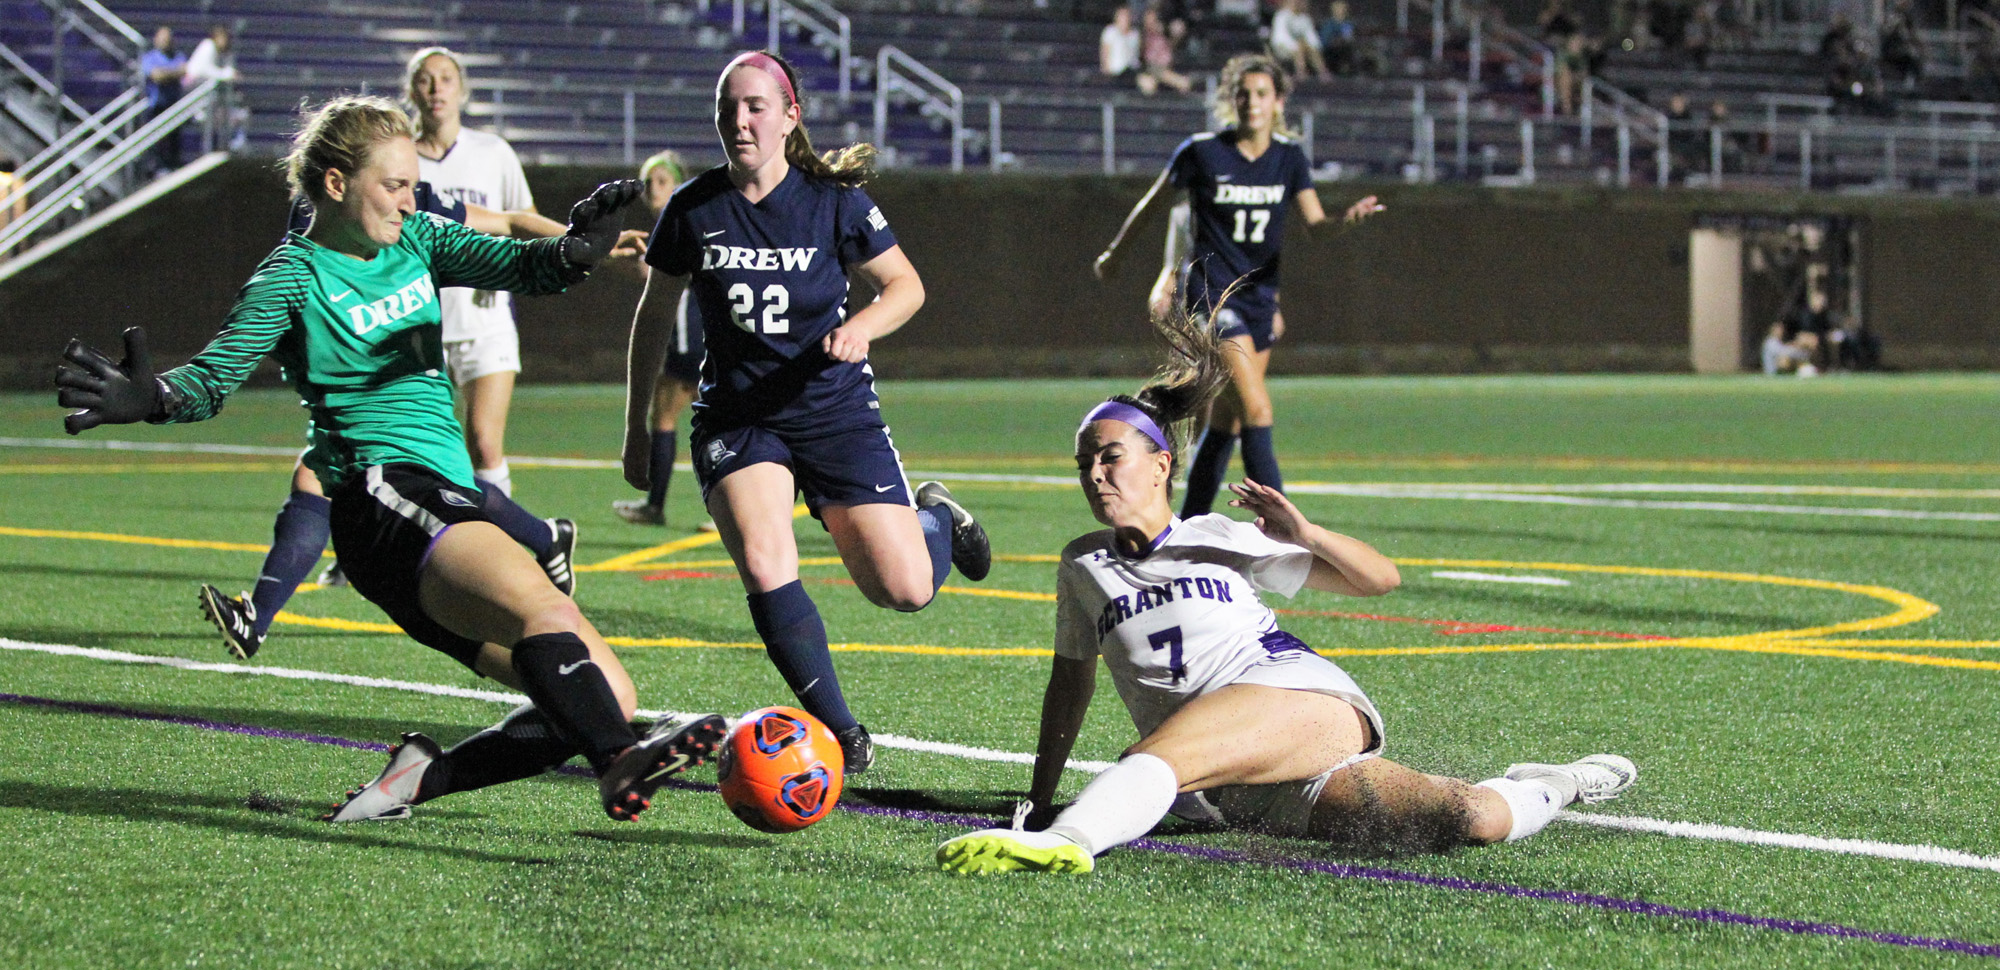 Freshman Jessica Letherbarrow had a goal and an assist in a 6-0 win over Drew on Wednesday night.